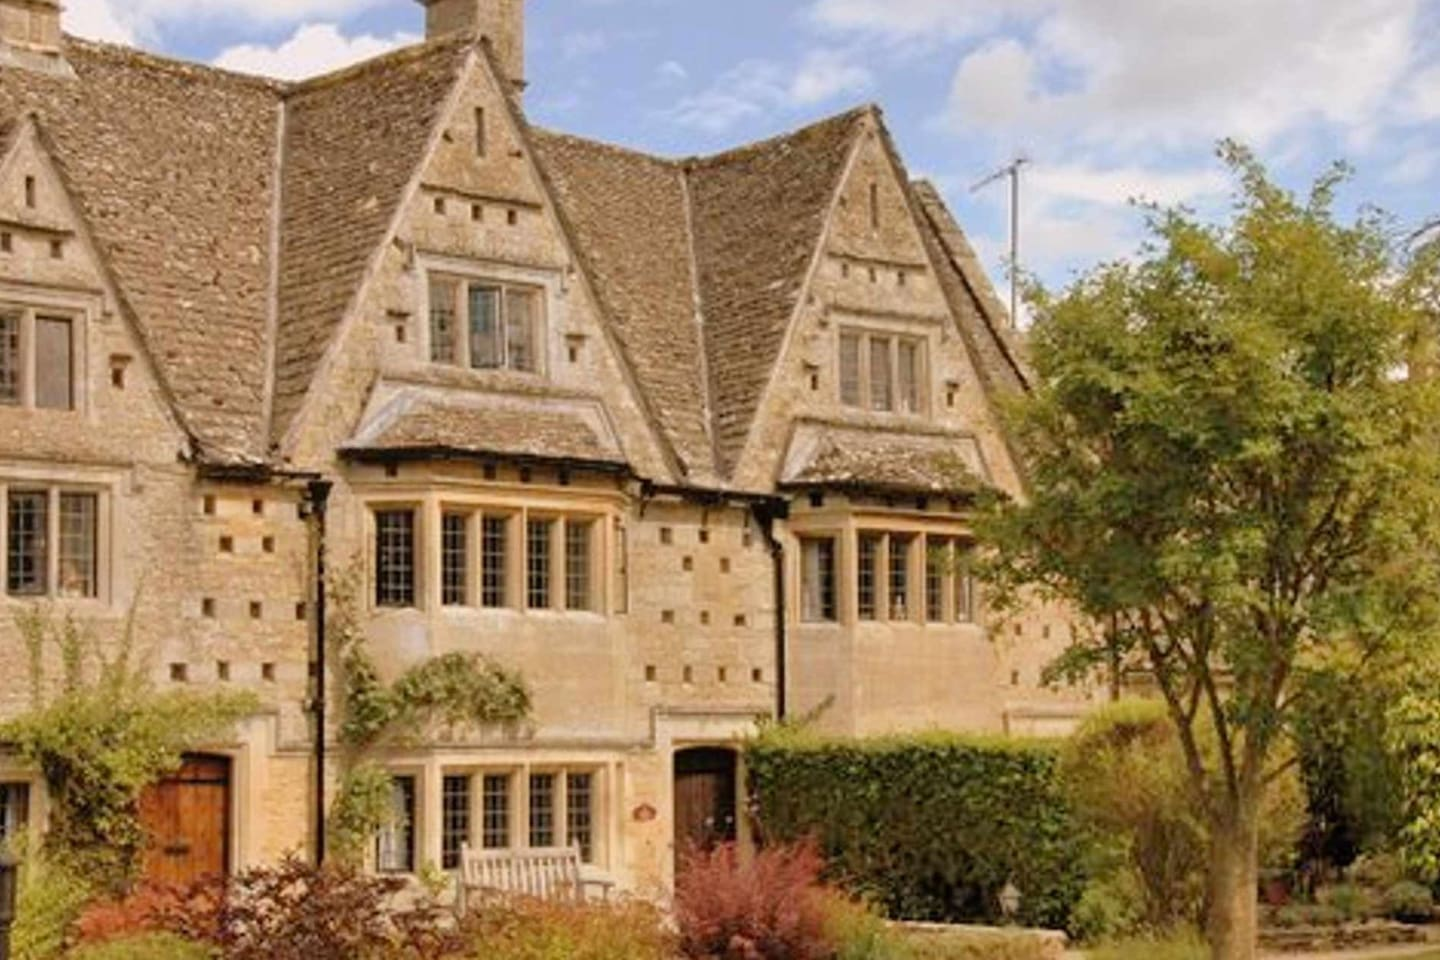 Welcome to the impressive, Grade II* listed, Middle Gable The Old Hall